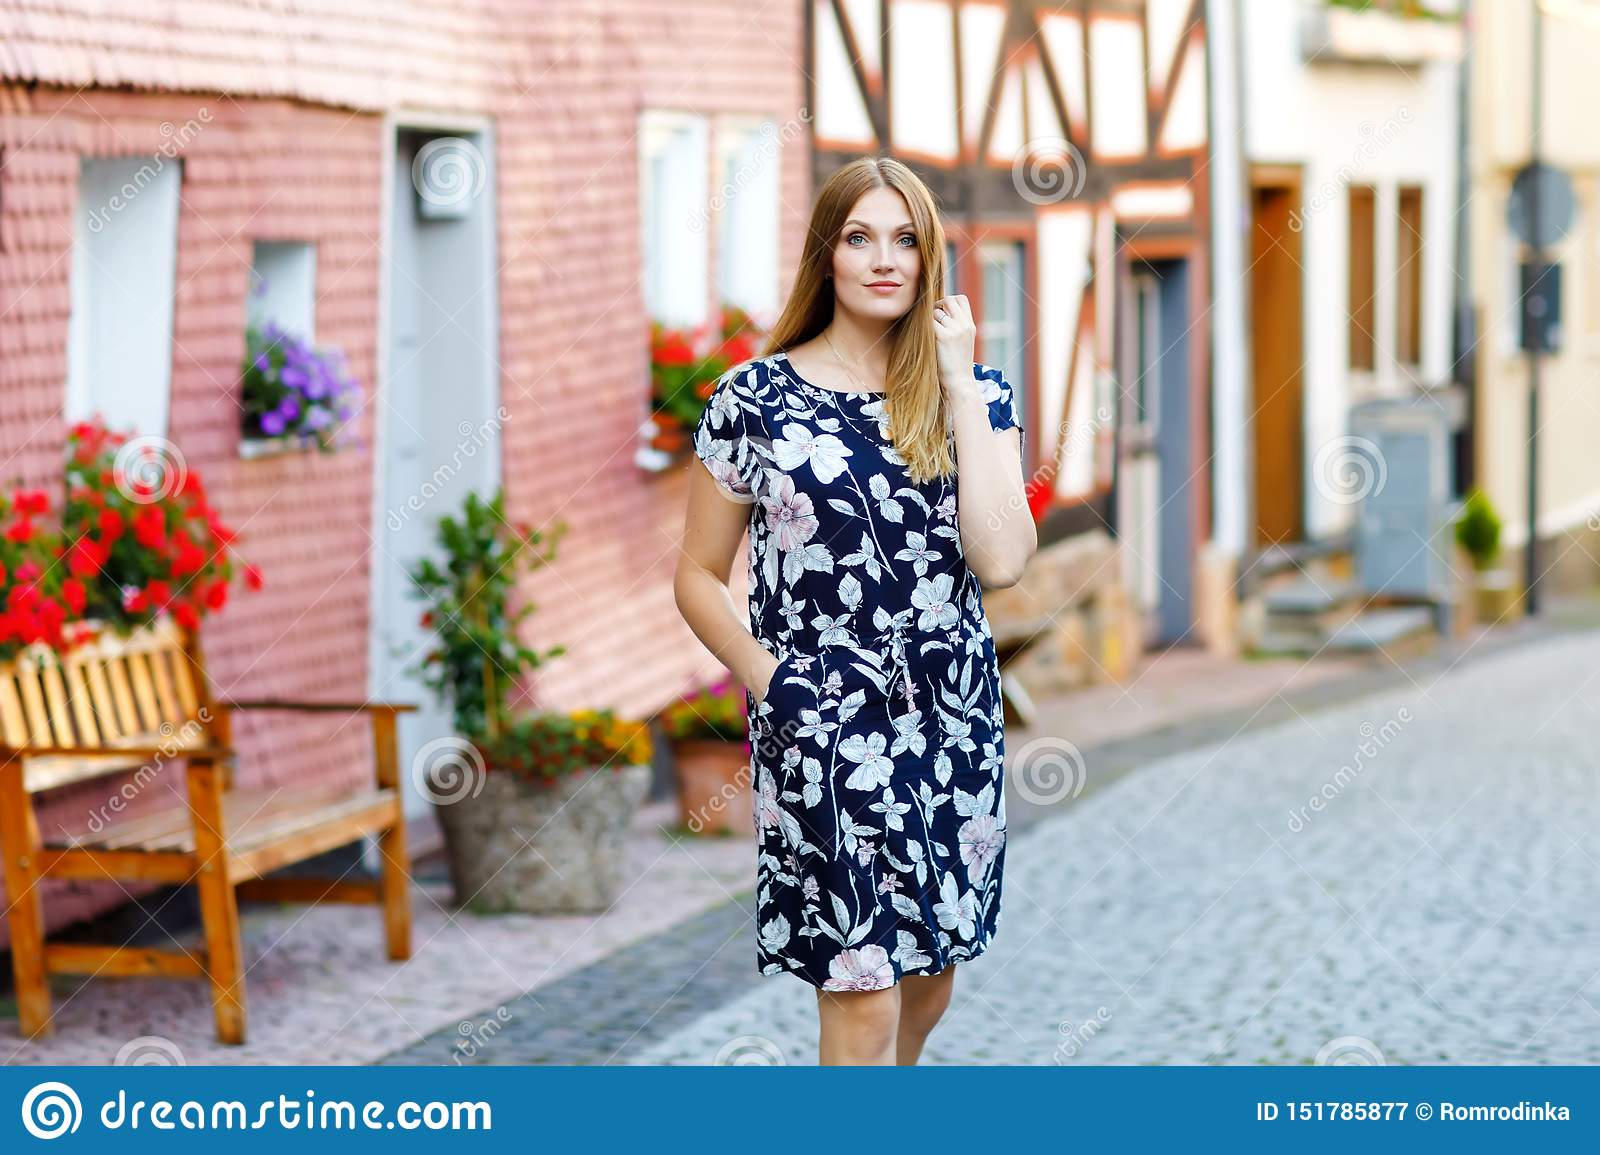 Beautiful young woman with long hairs in summer dress going for a walk in German city. Happy girl enjoying walking in